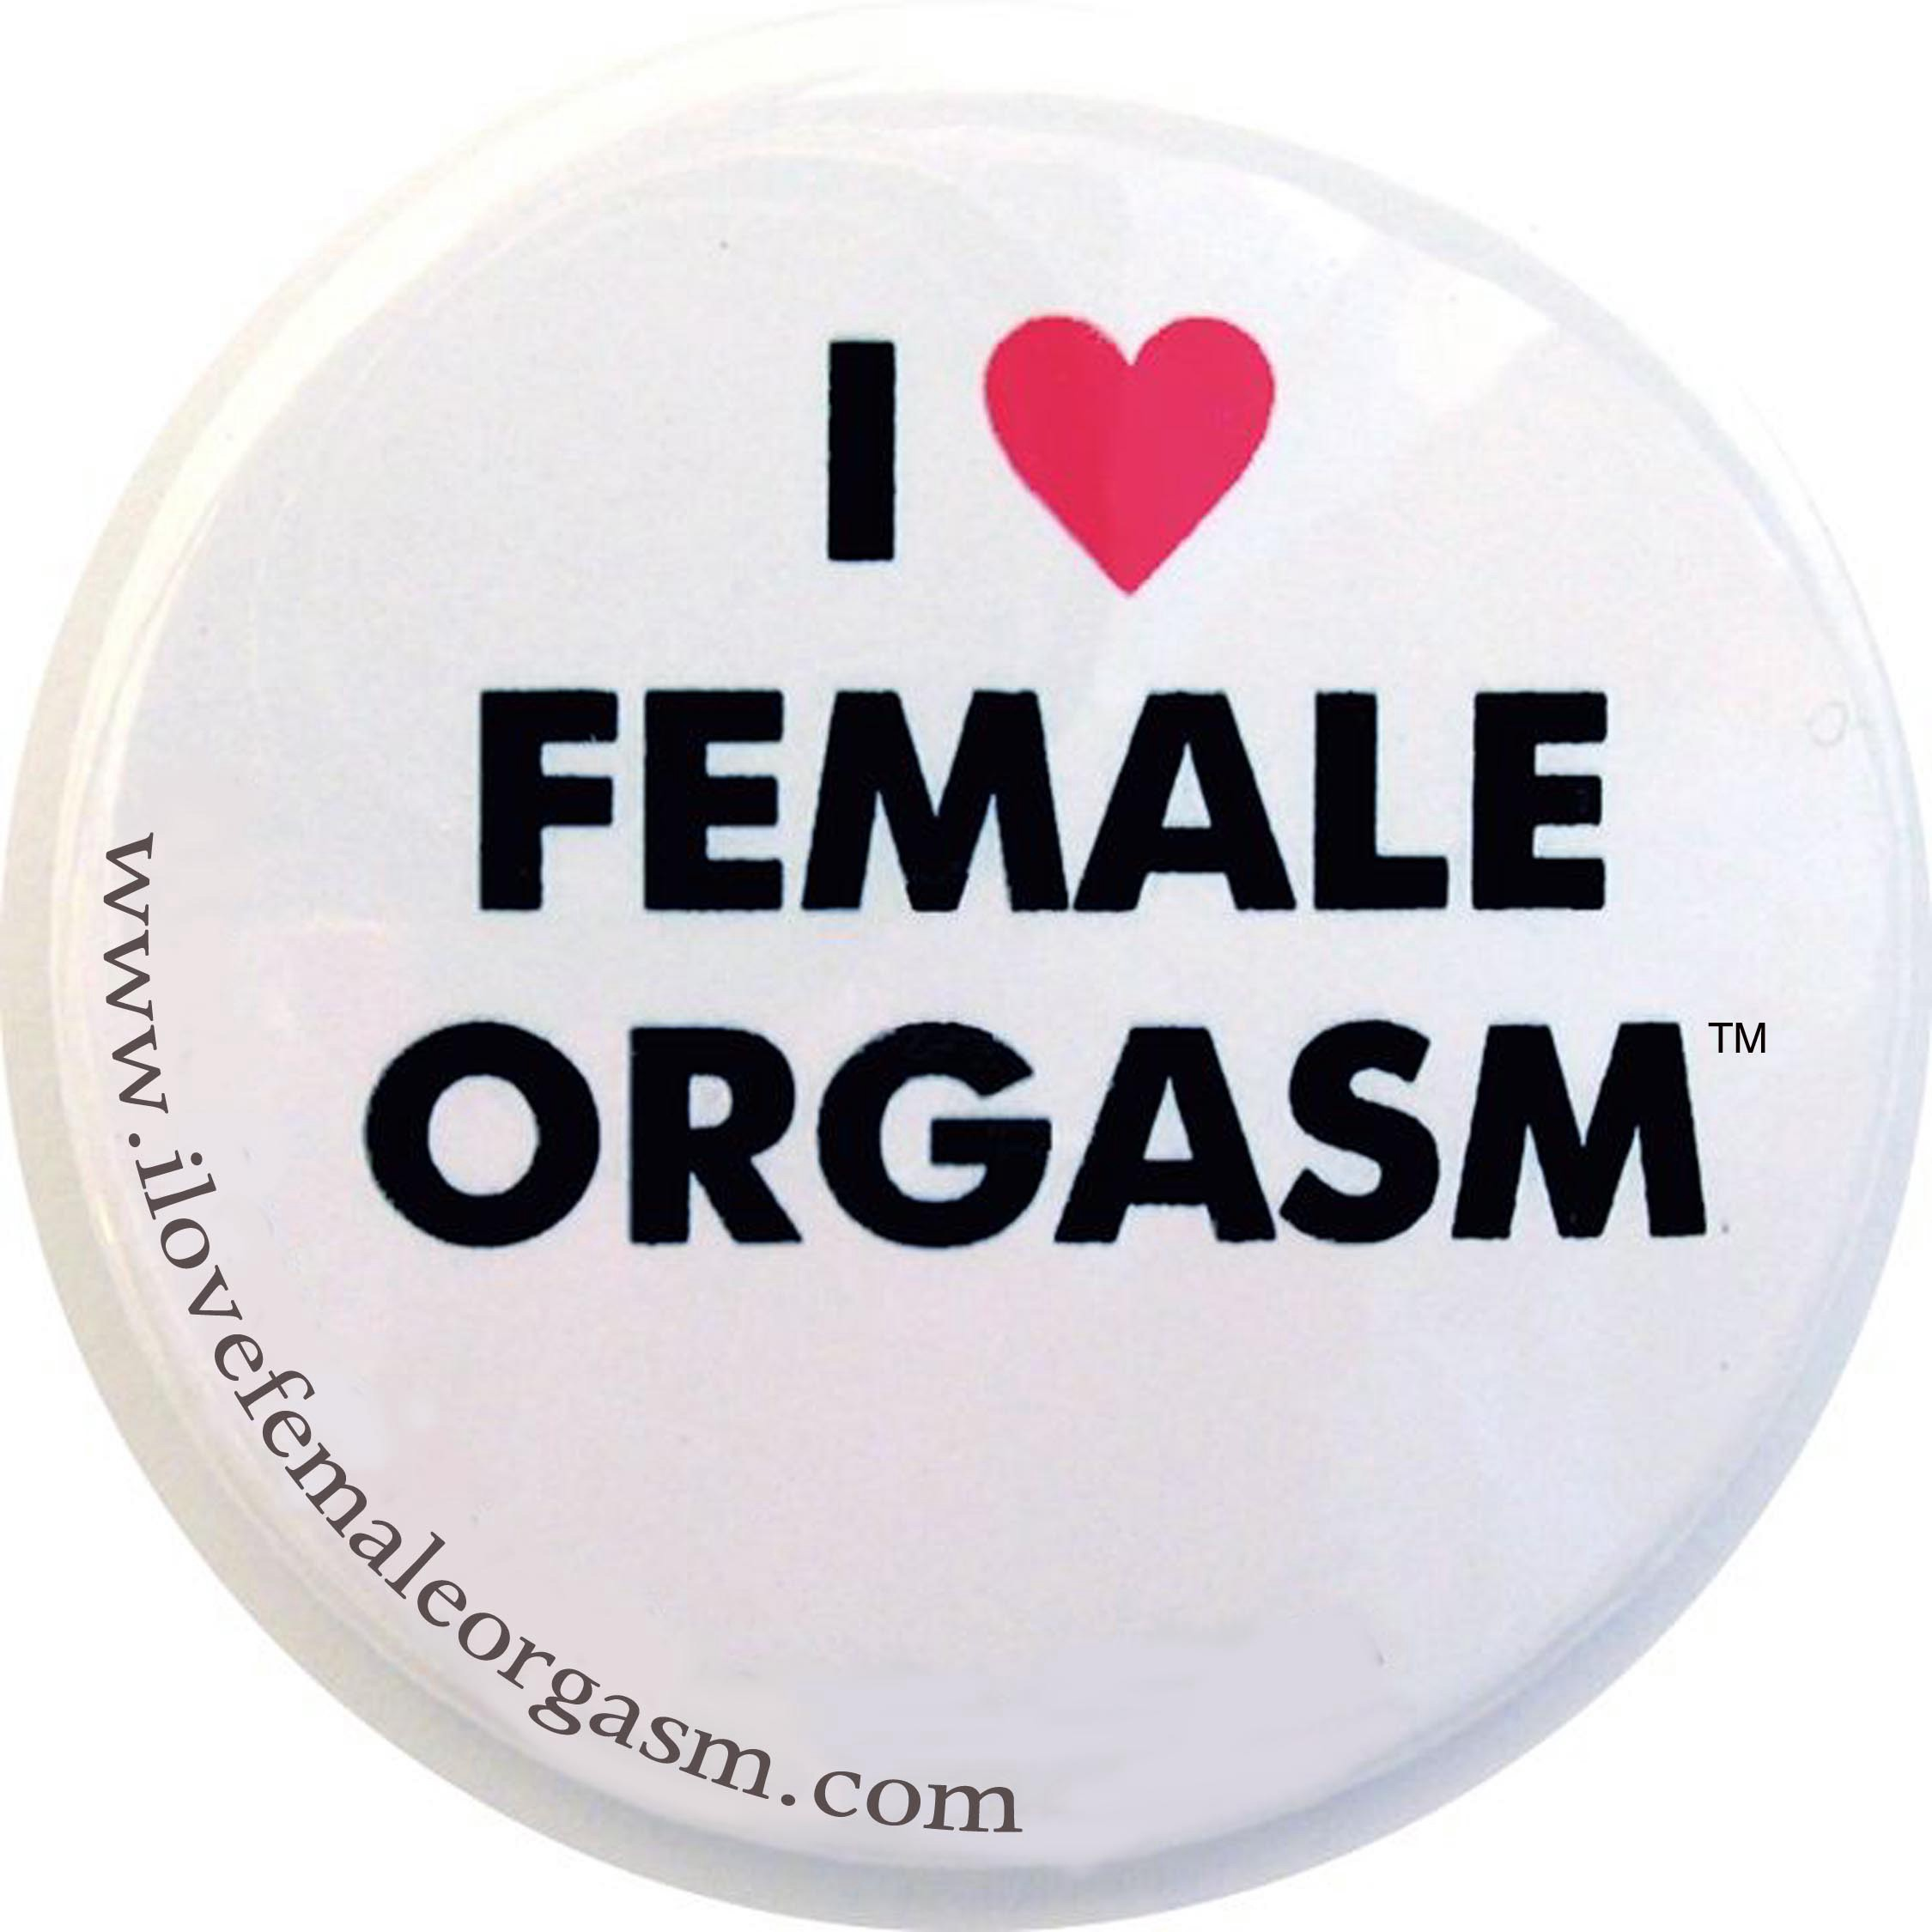 I Love Female Orgasm graphic